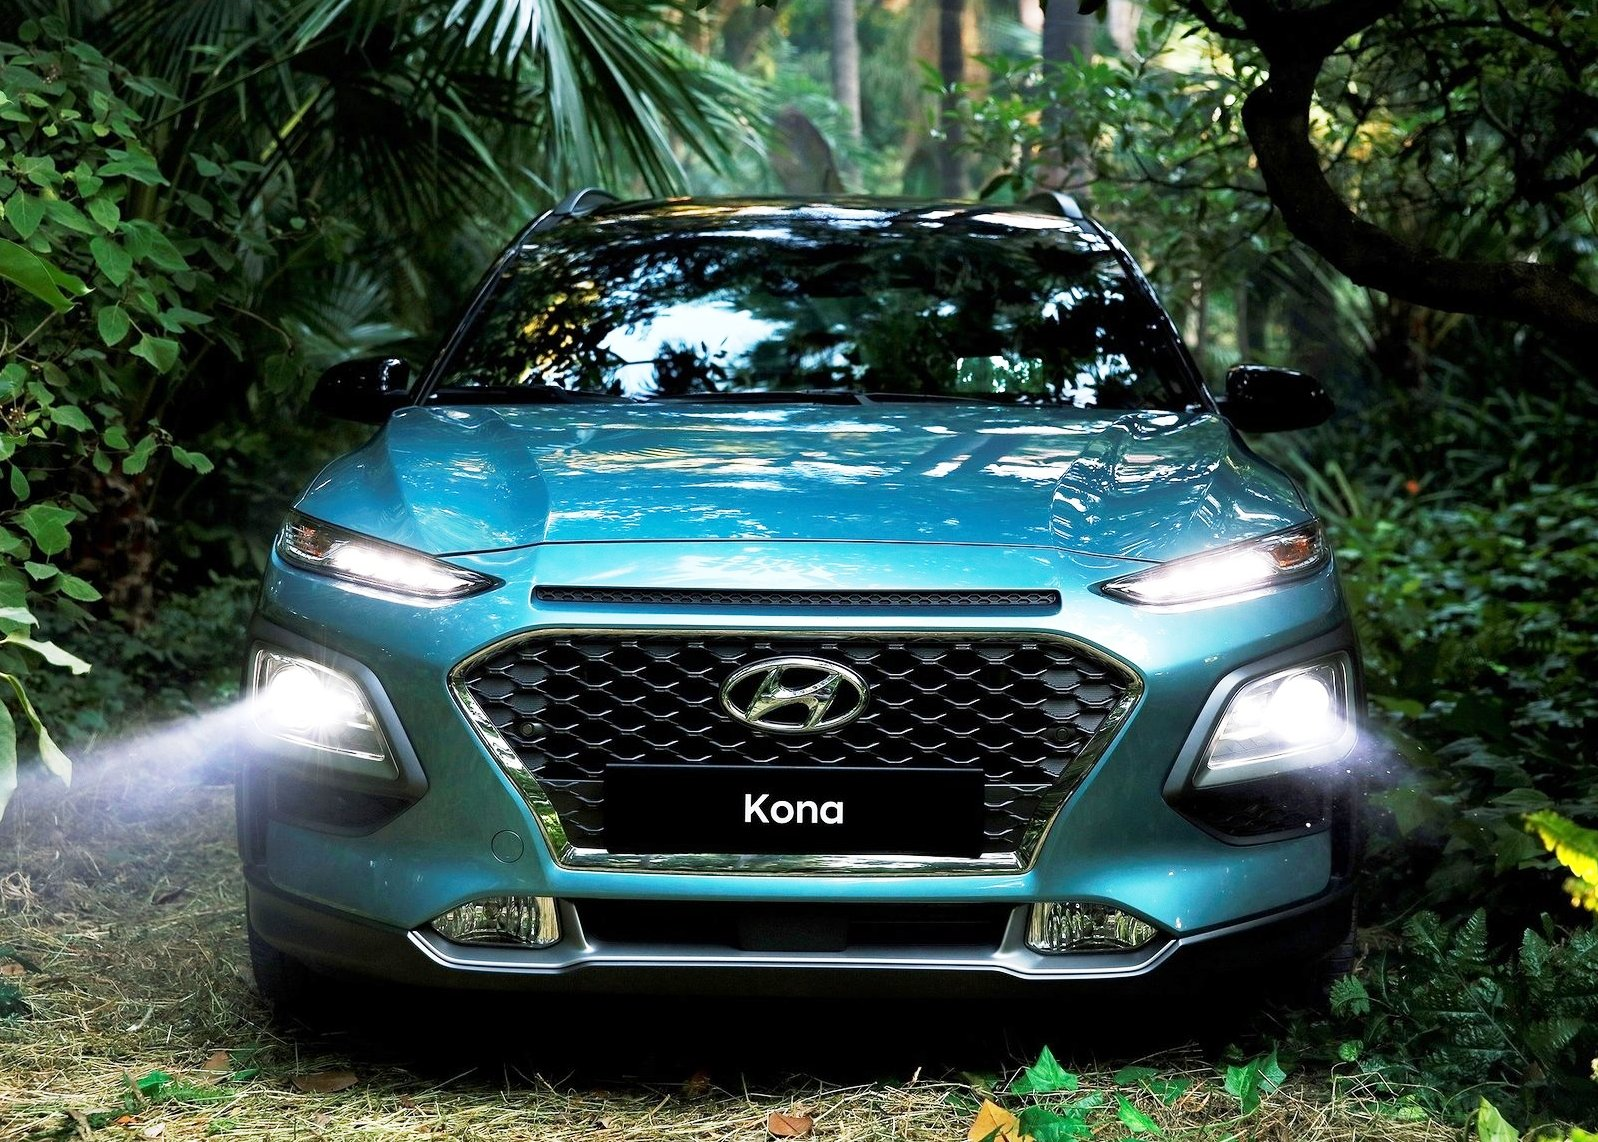 2018 Hyundai Kona SUV Review Specs Price